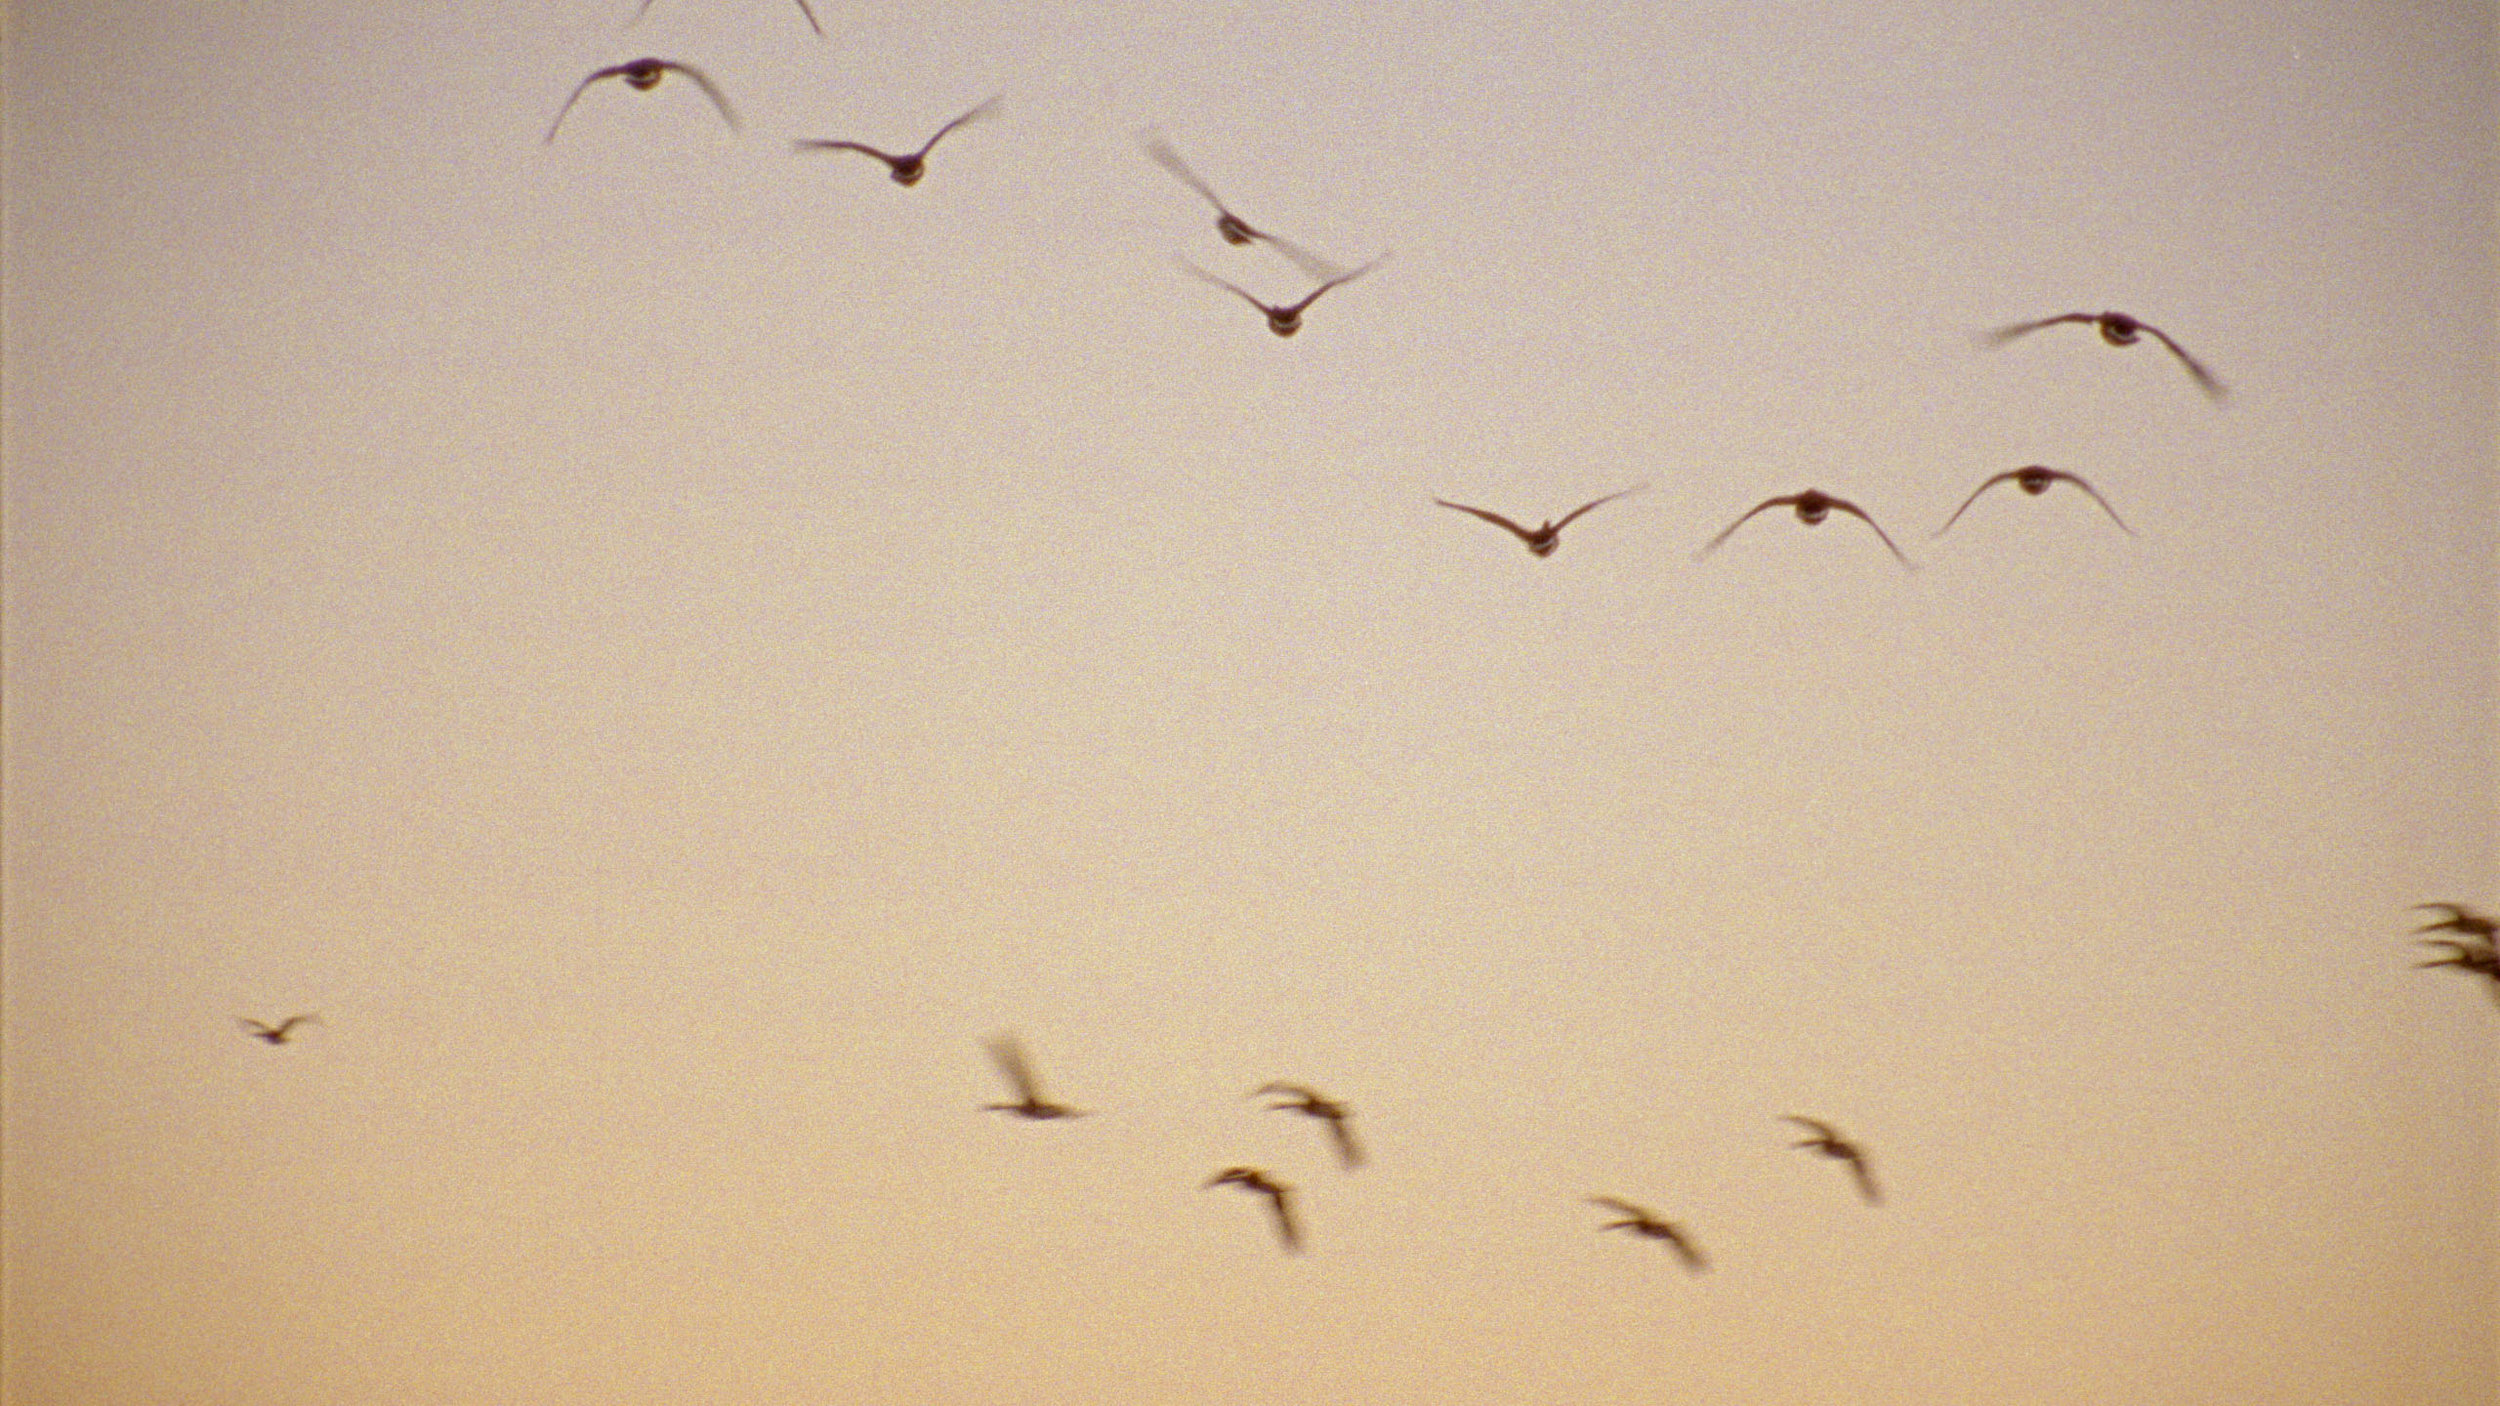 Geese Flying Away.jpg